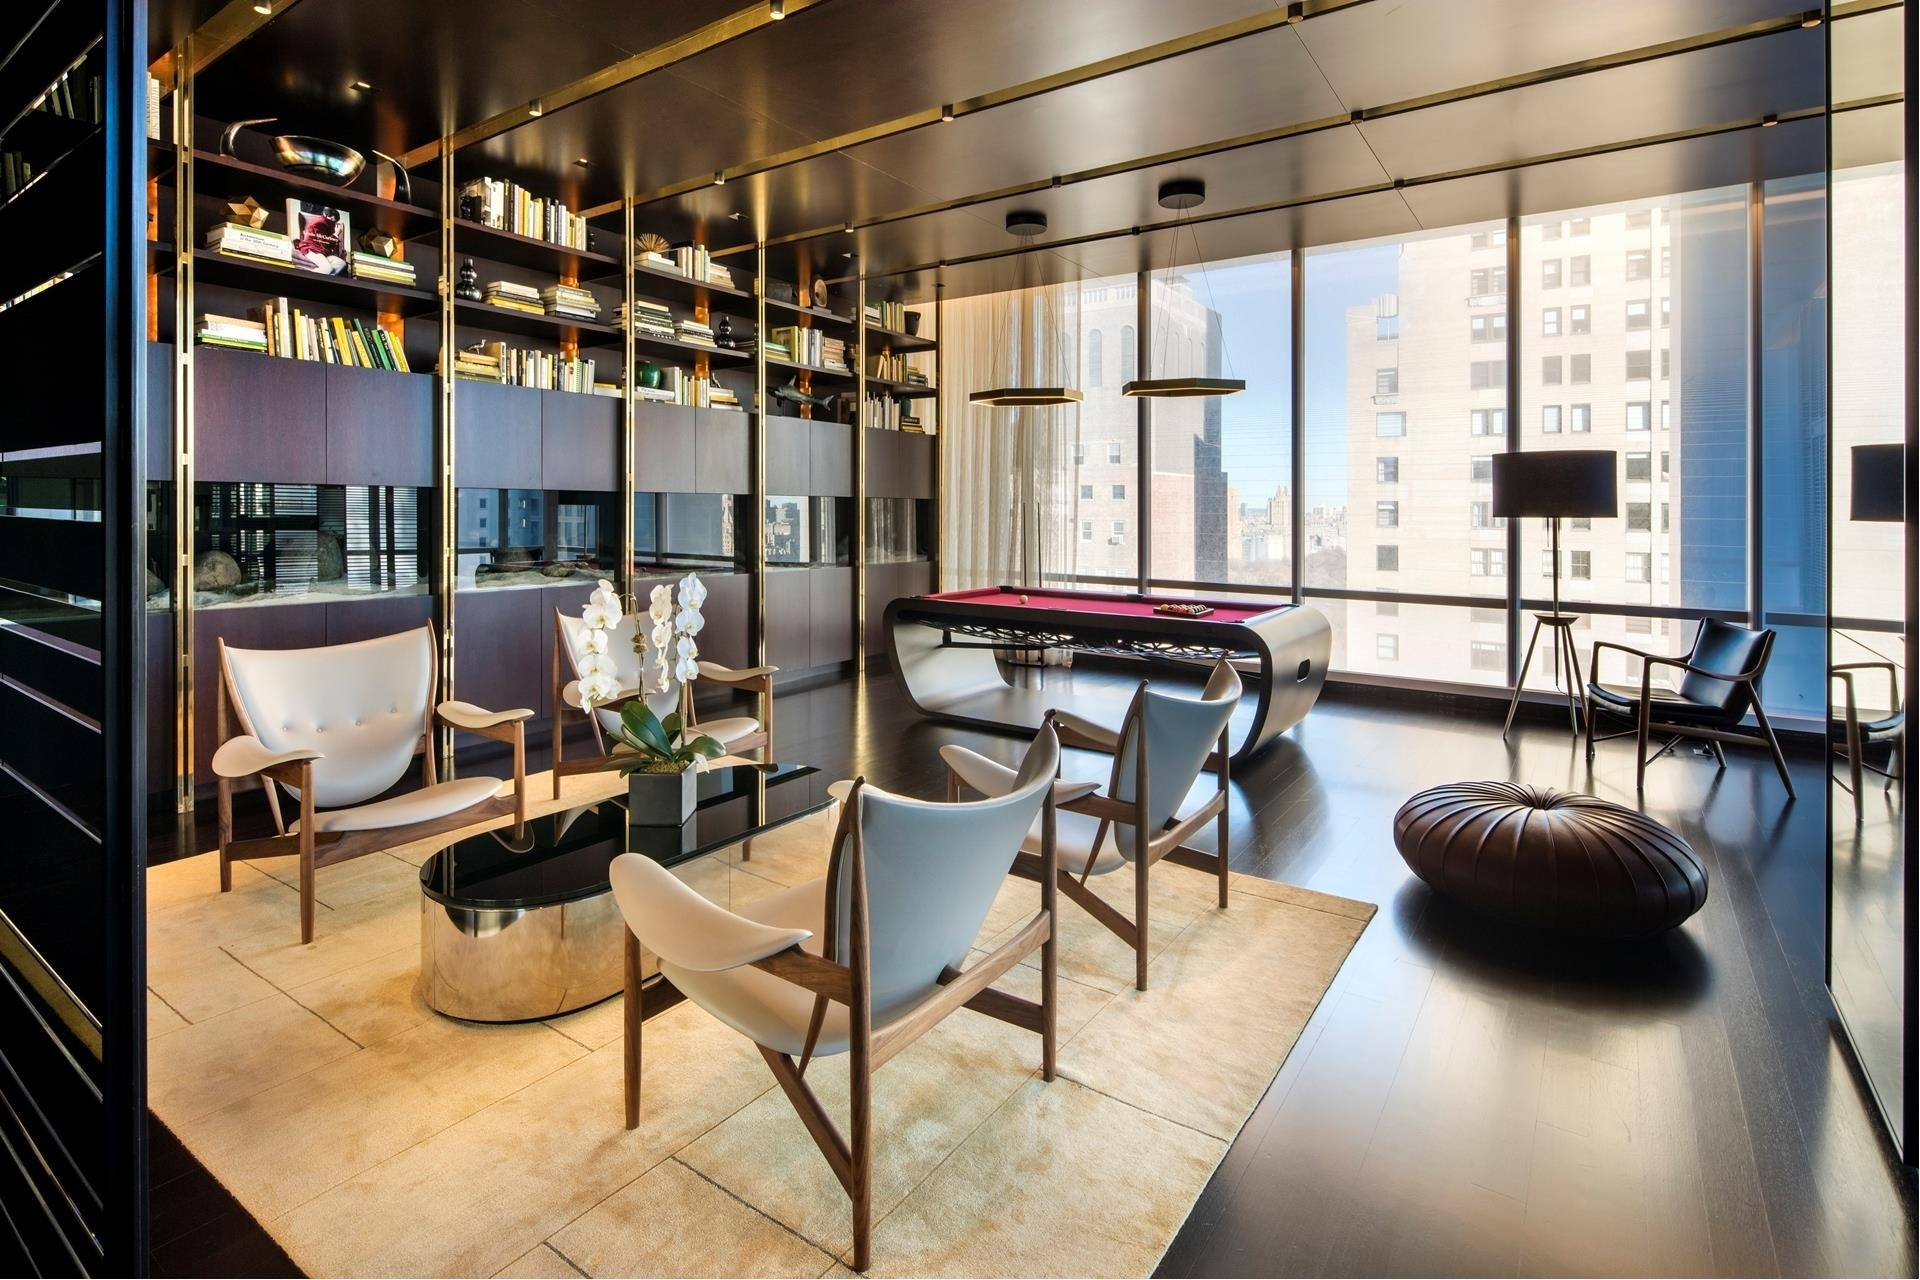 10. Condominiums for Sale at One57, 157 W 57TH ST , 41A Midtown West, New York, NY 10019